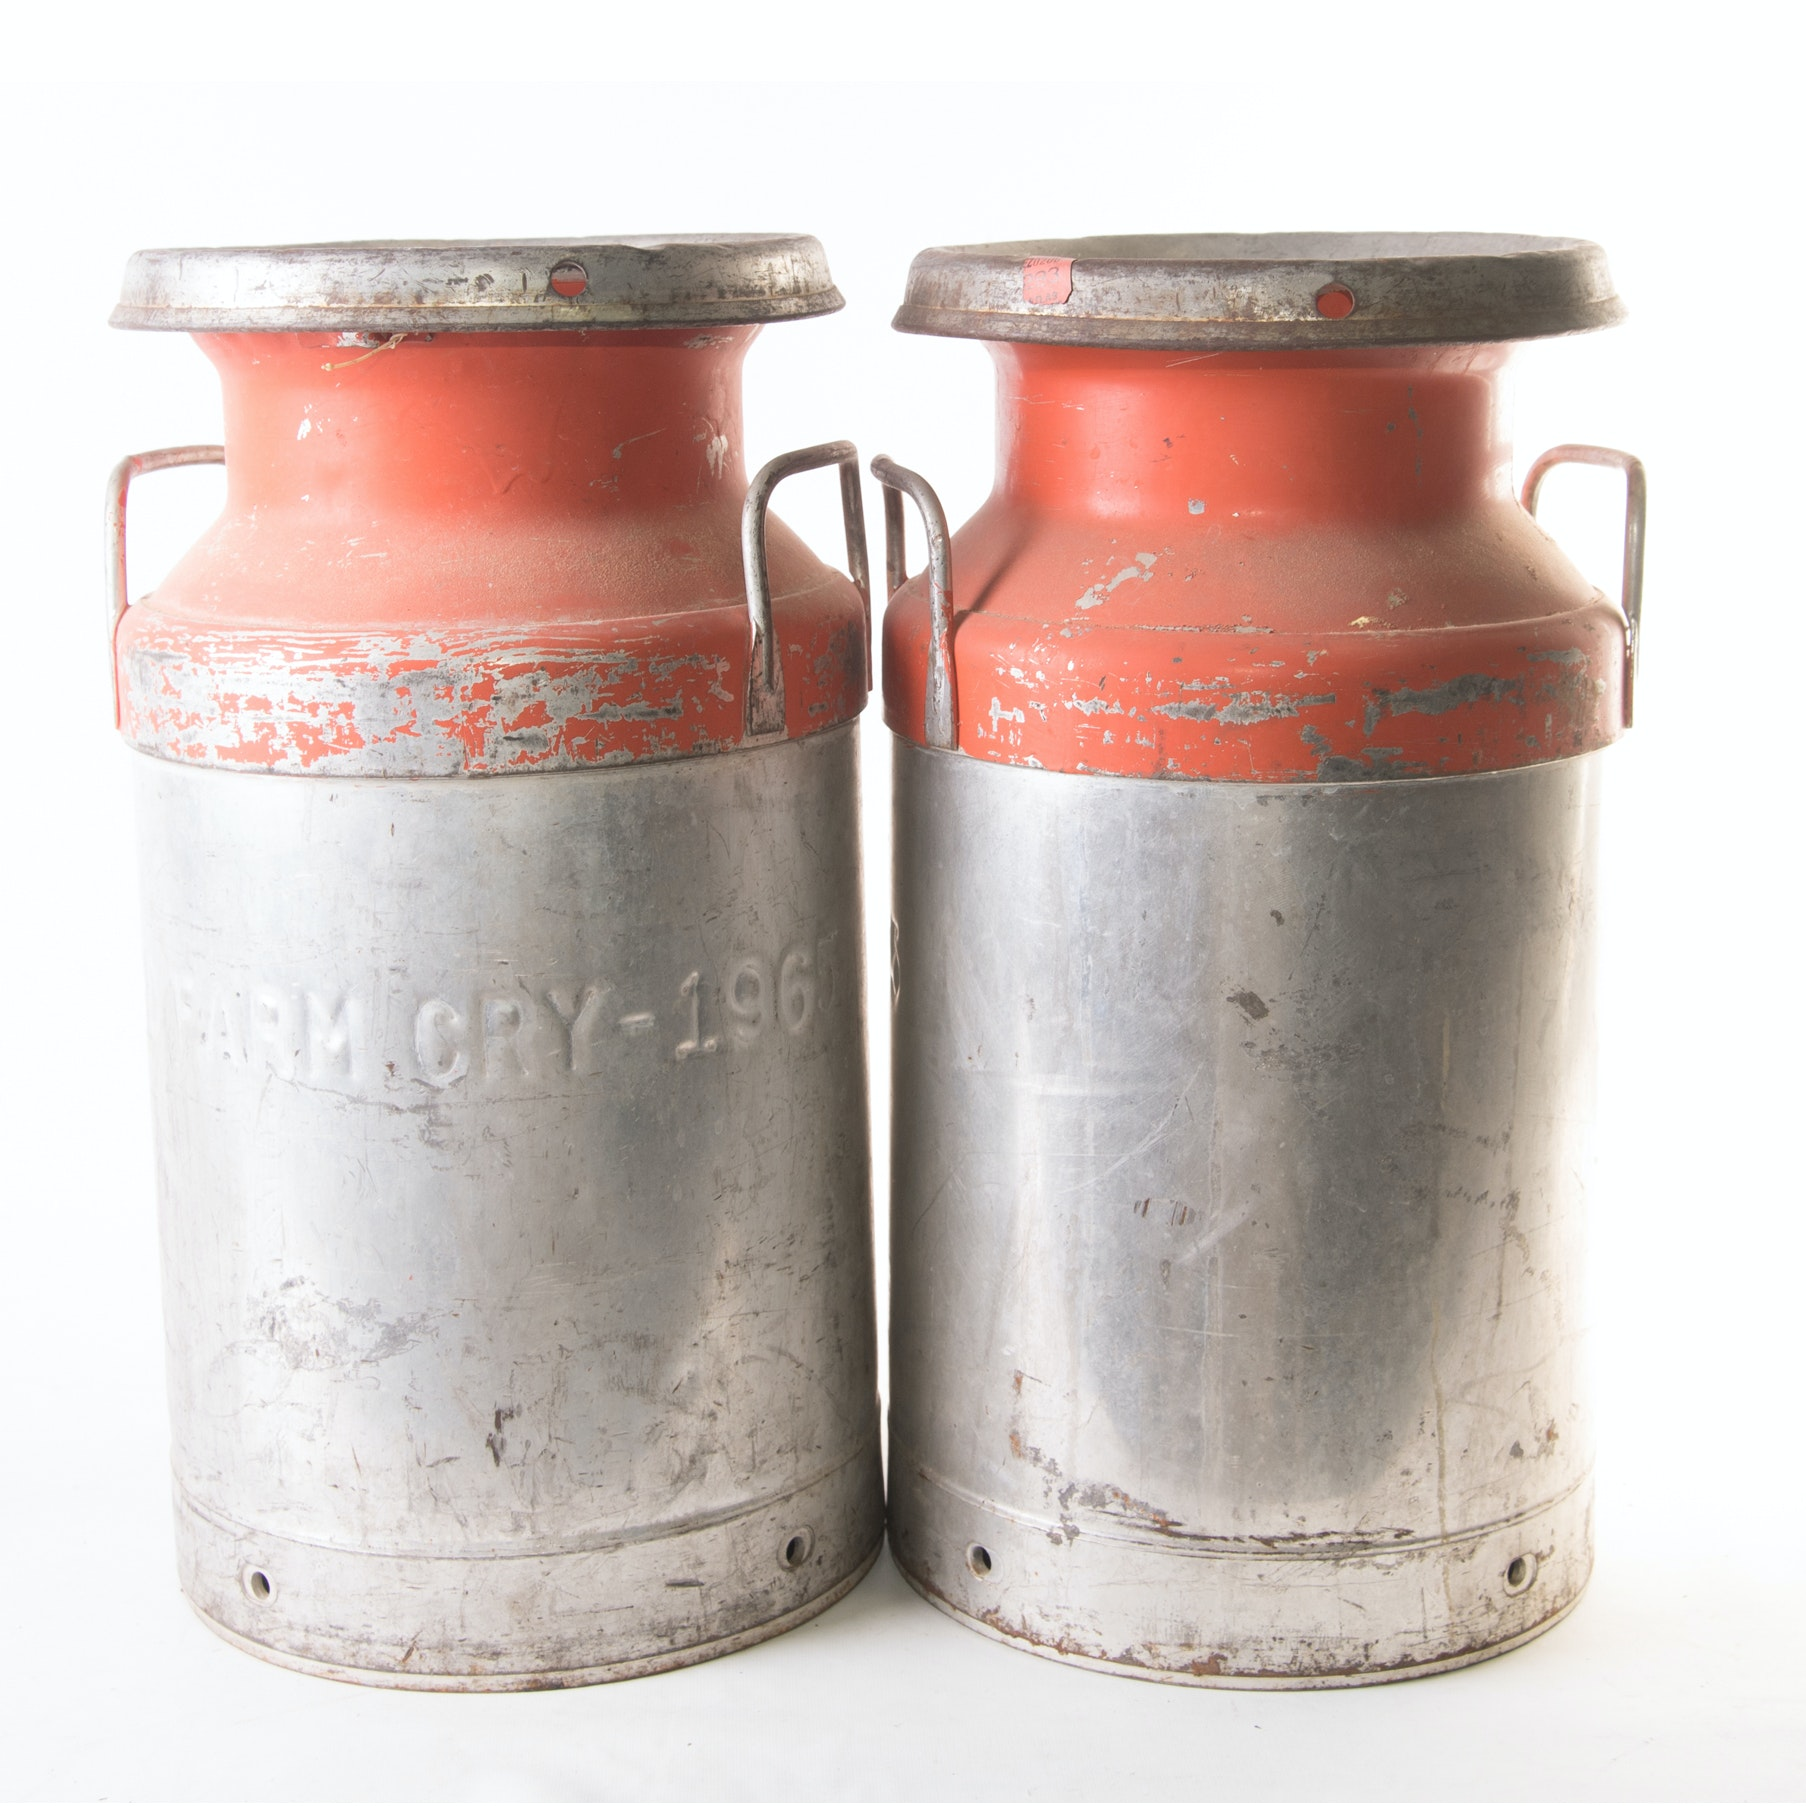 Vintage Island Farms Milk Cans